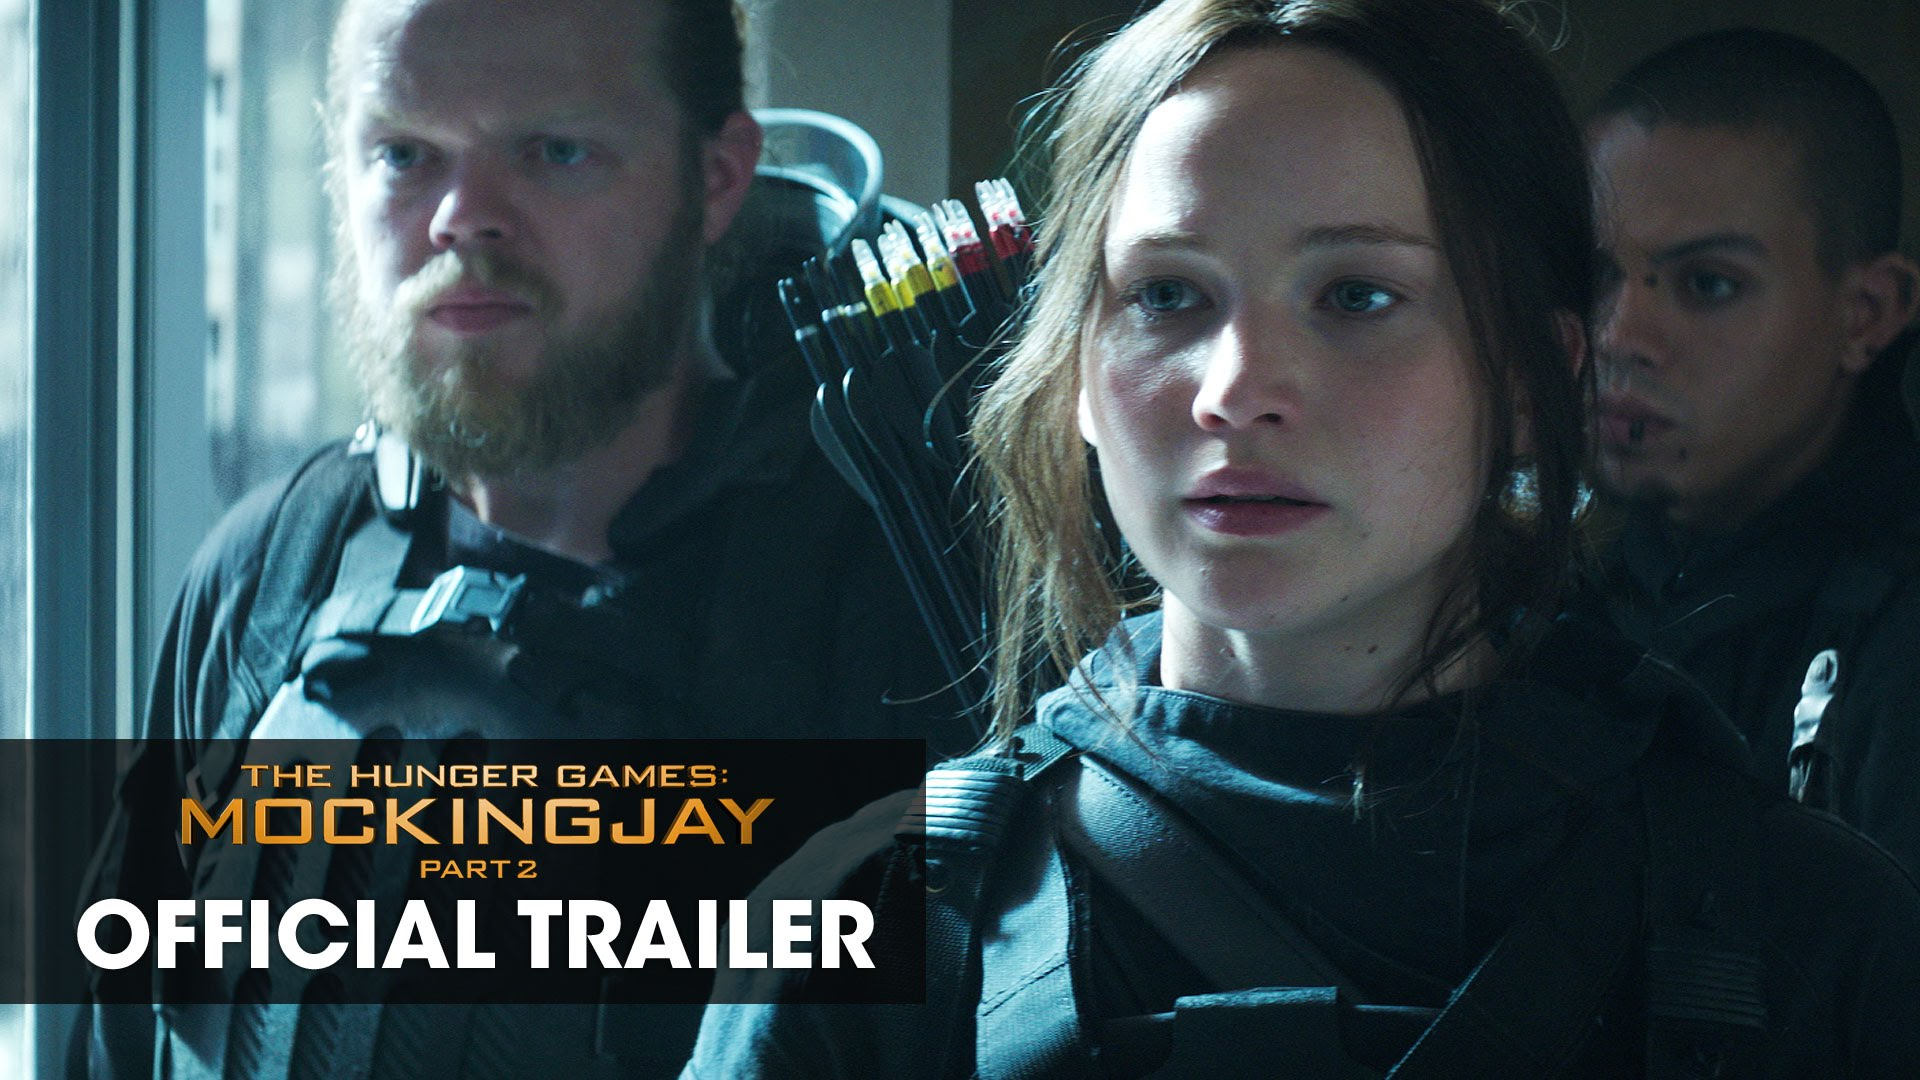 Letzter Trailer: THE HUNGER GAMES – MOCKINGJAY PART 2